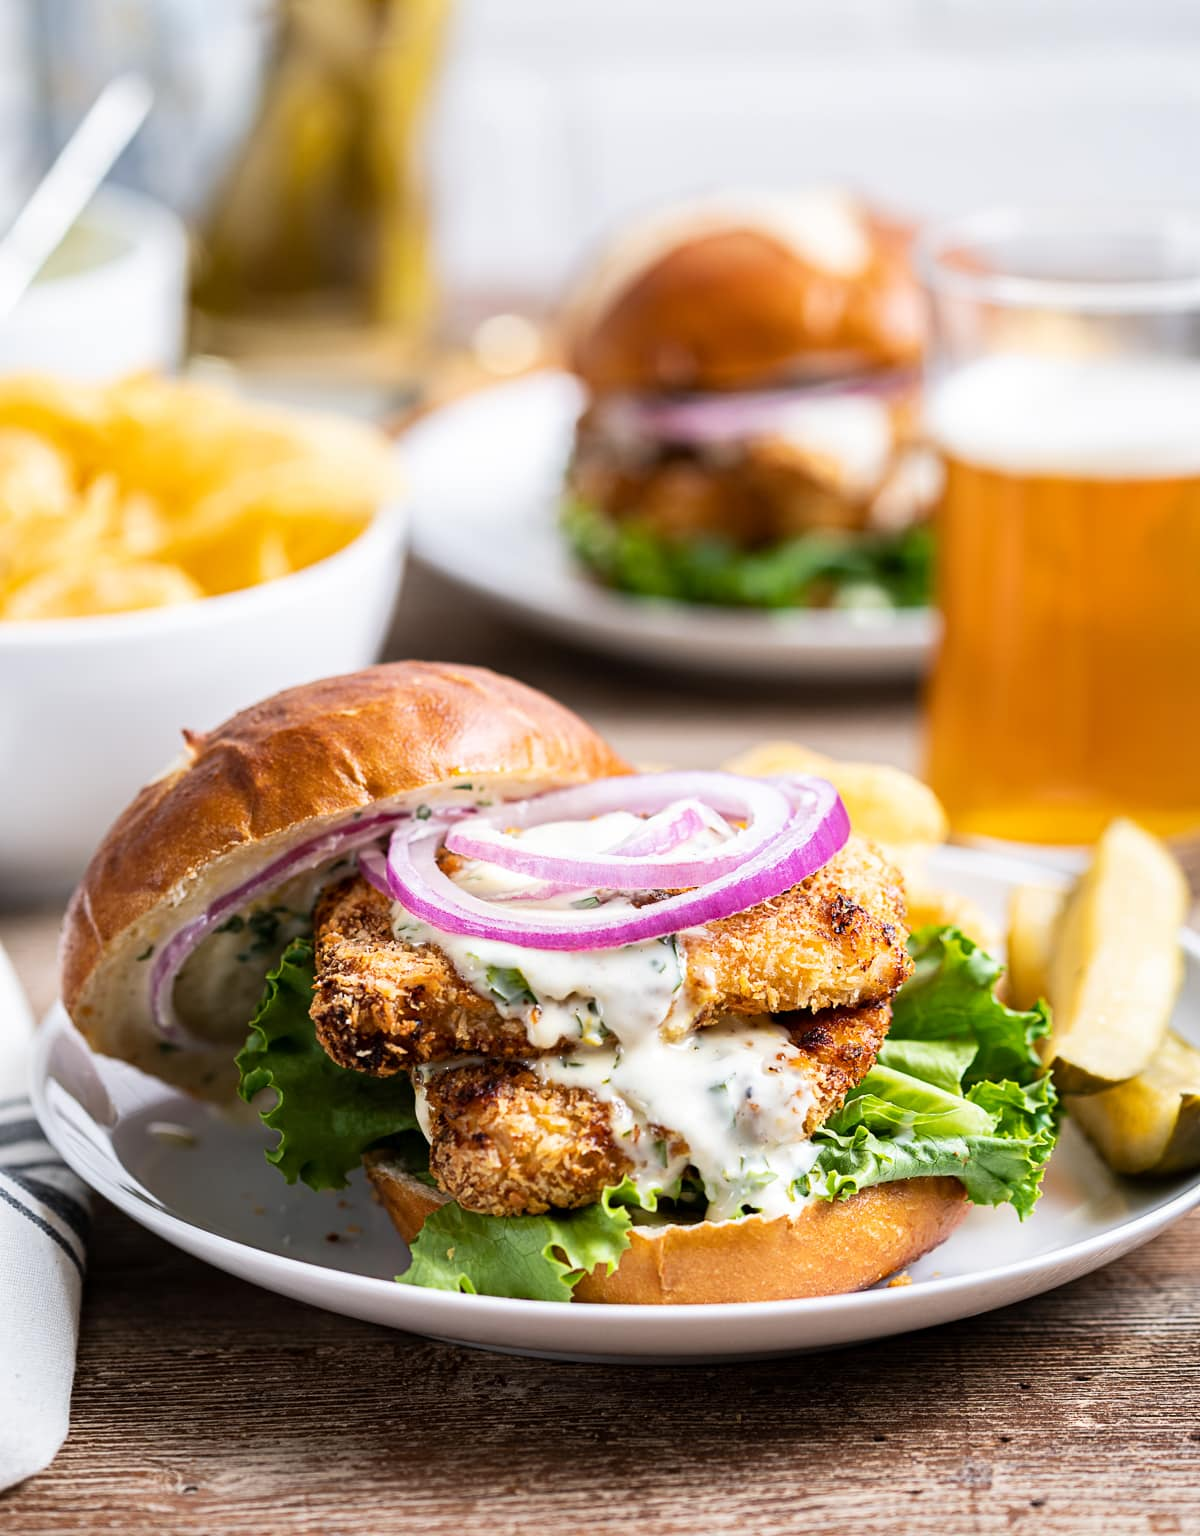 two pieces of breaded air fryer chicken sandwiched in a pretzle bun with green lettuce, red onion slices, pickles and chips on plate, bowl of chips, glass and bottle of beer